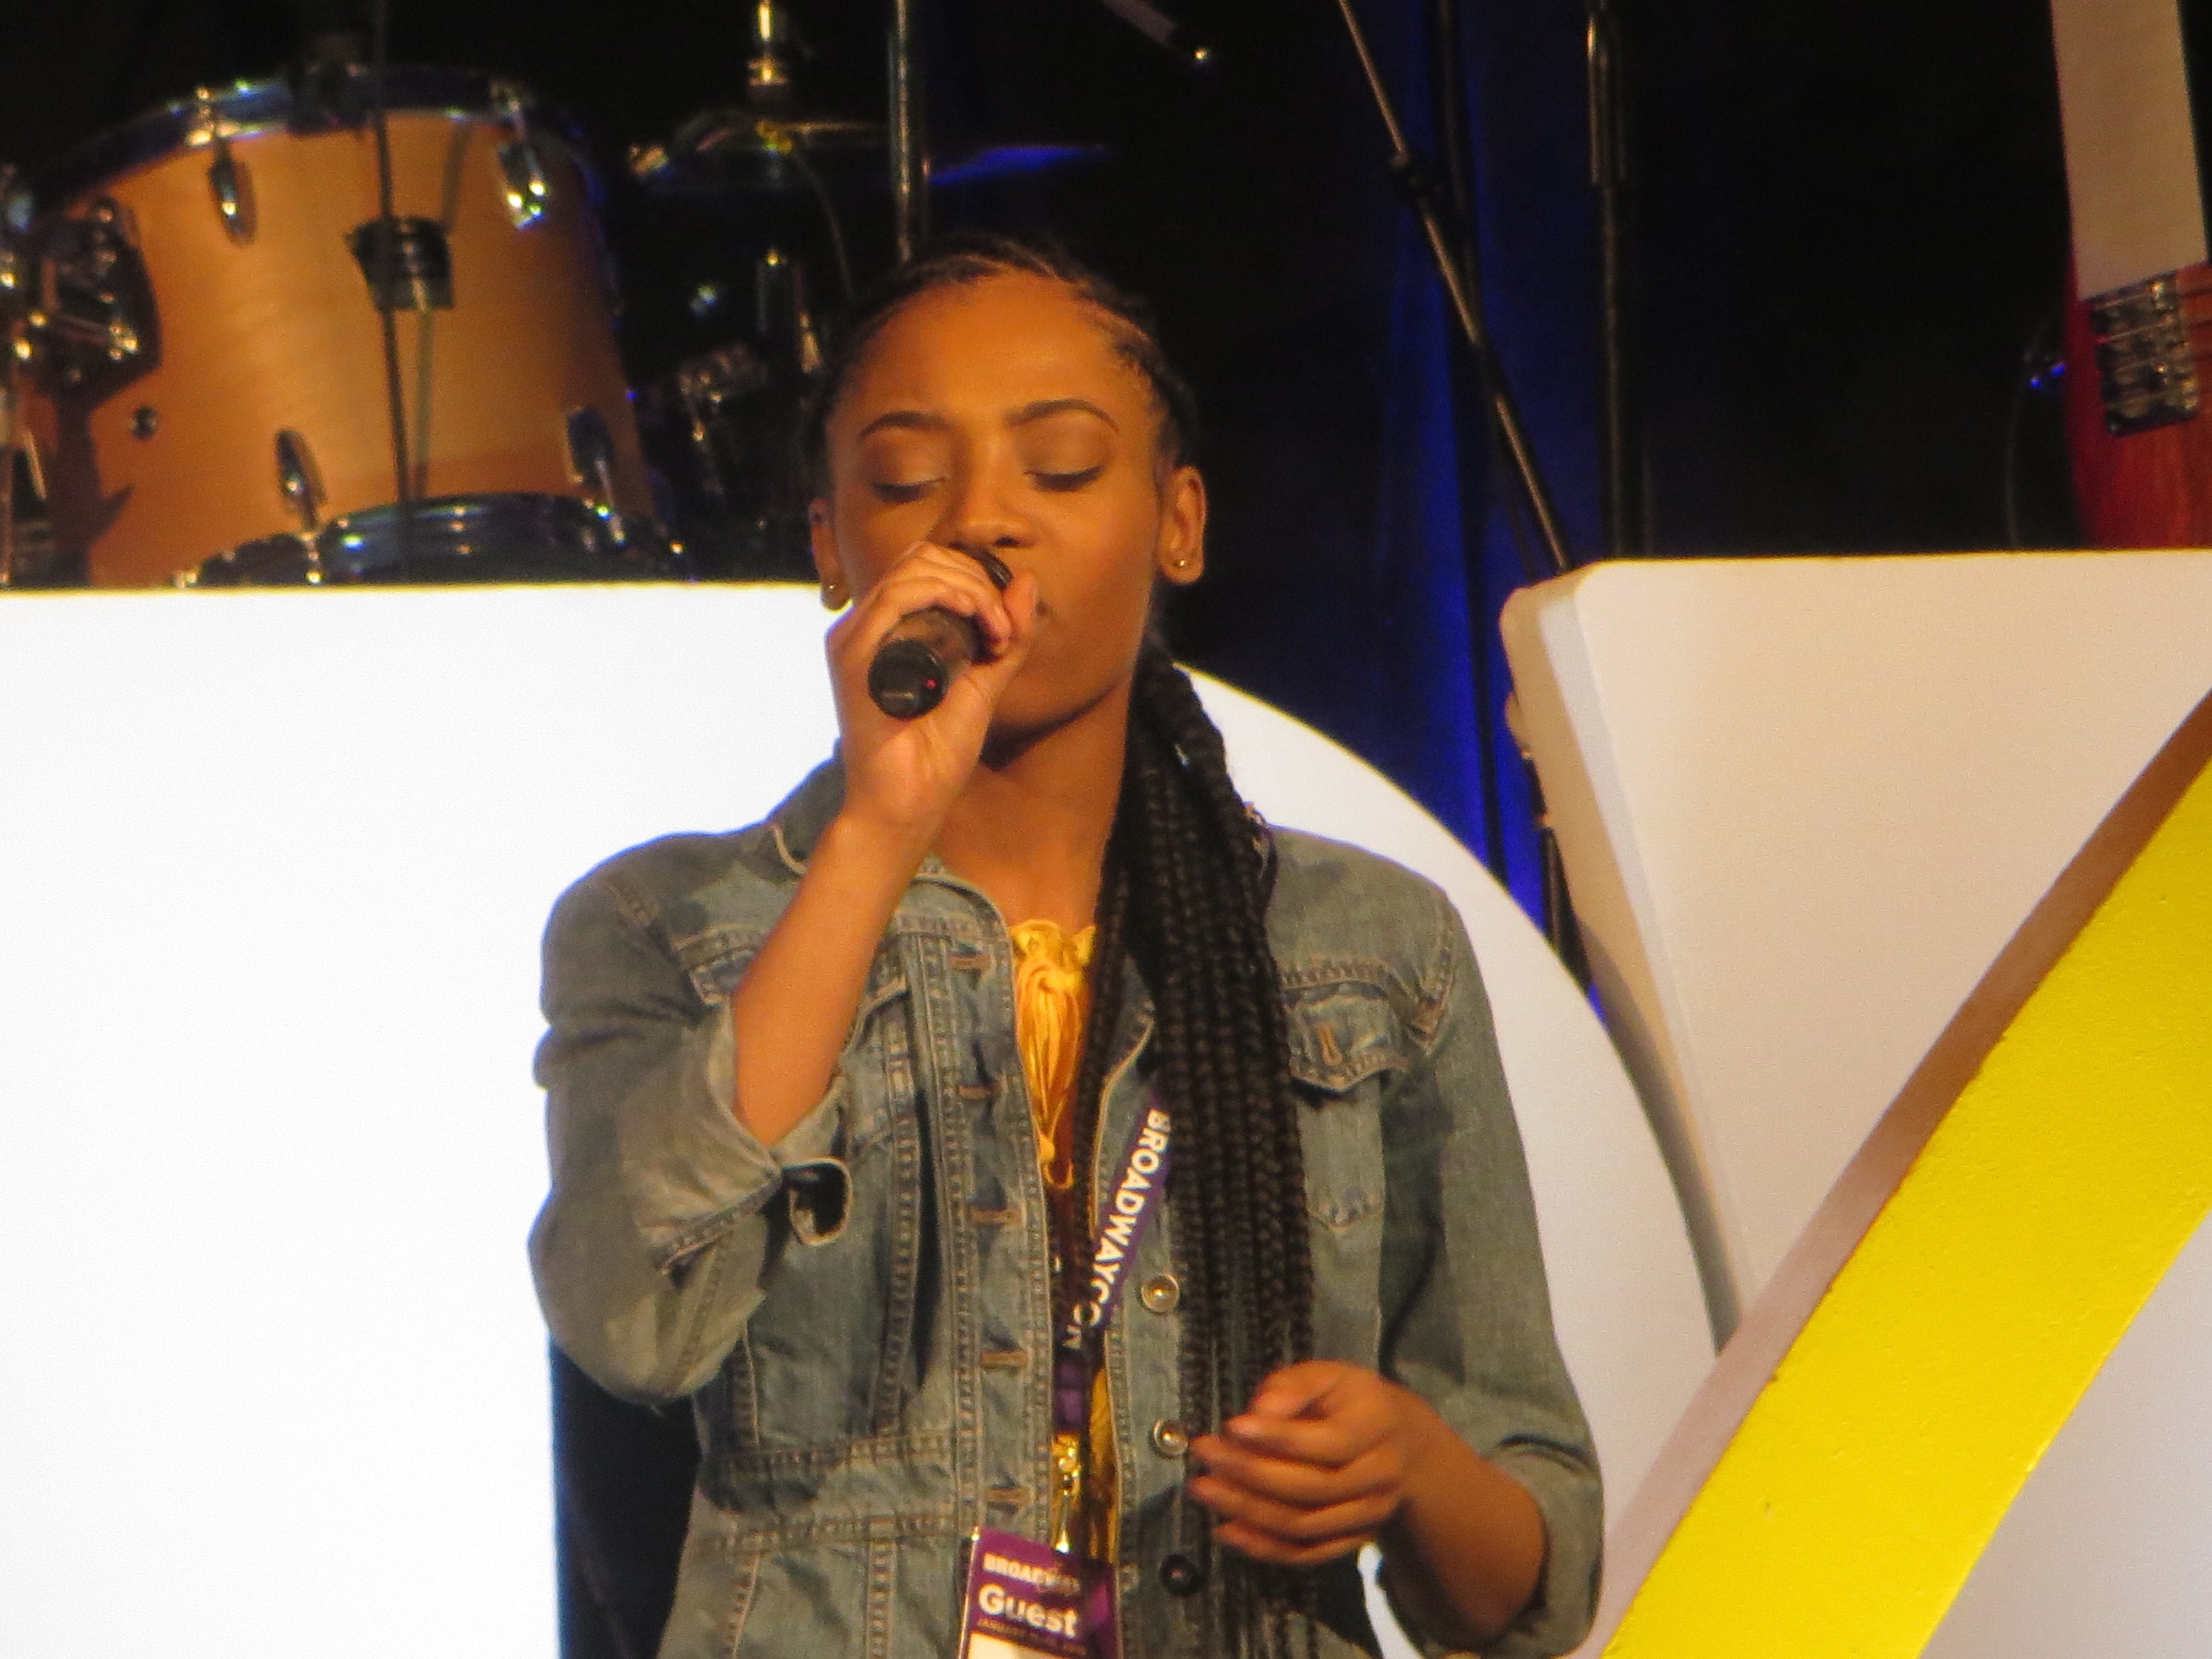 Hailey Kilgore at BroadwayCon 2019, held Jan. 11 to 13, 2019, at the New York Hilton Midtown in Manhattan.